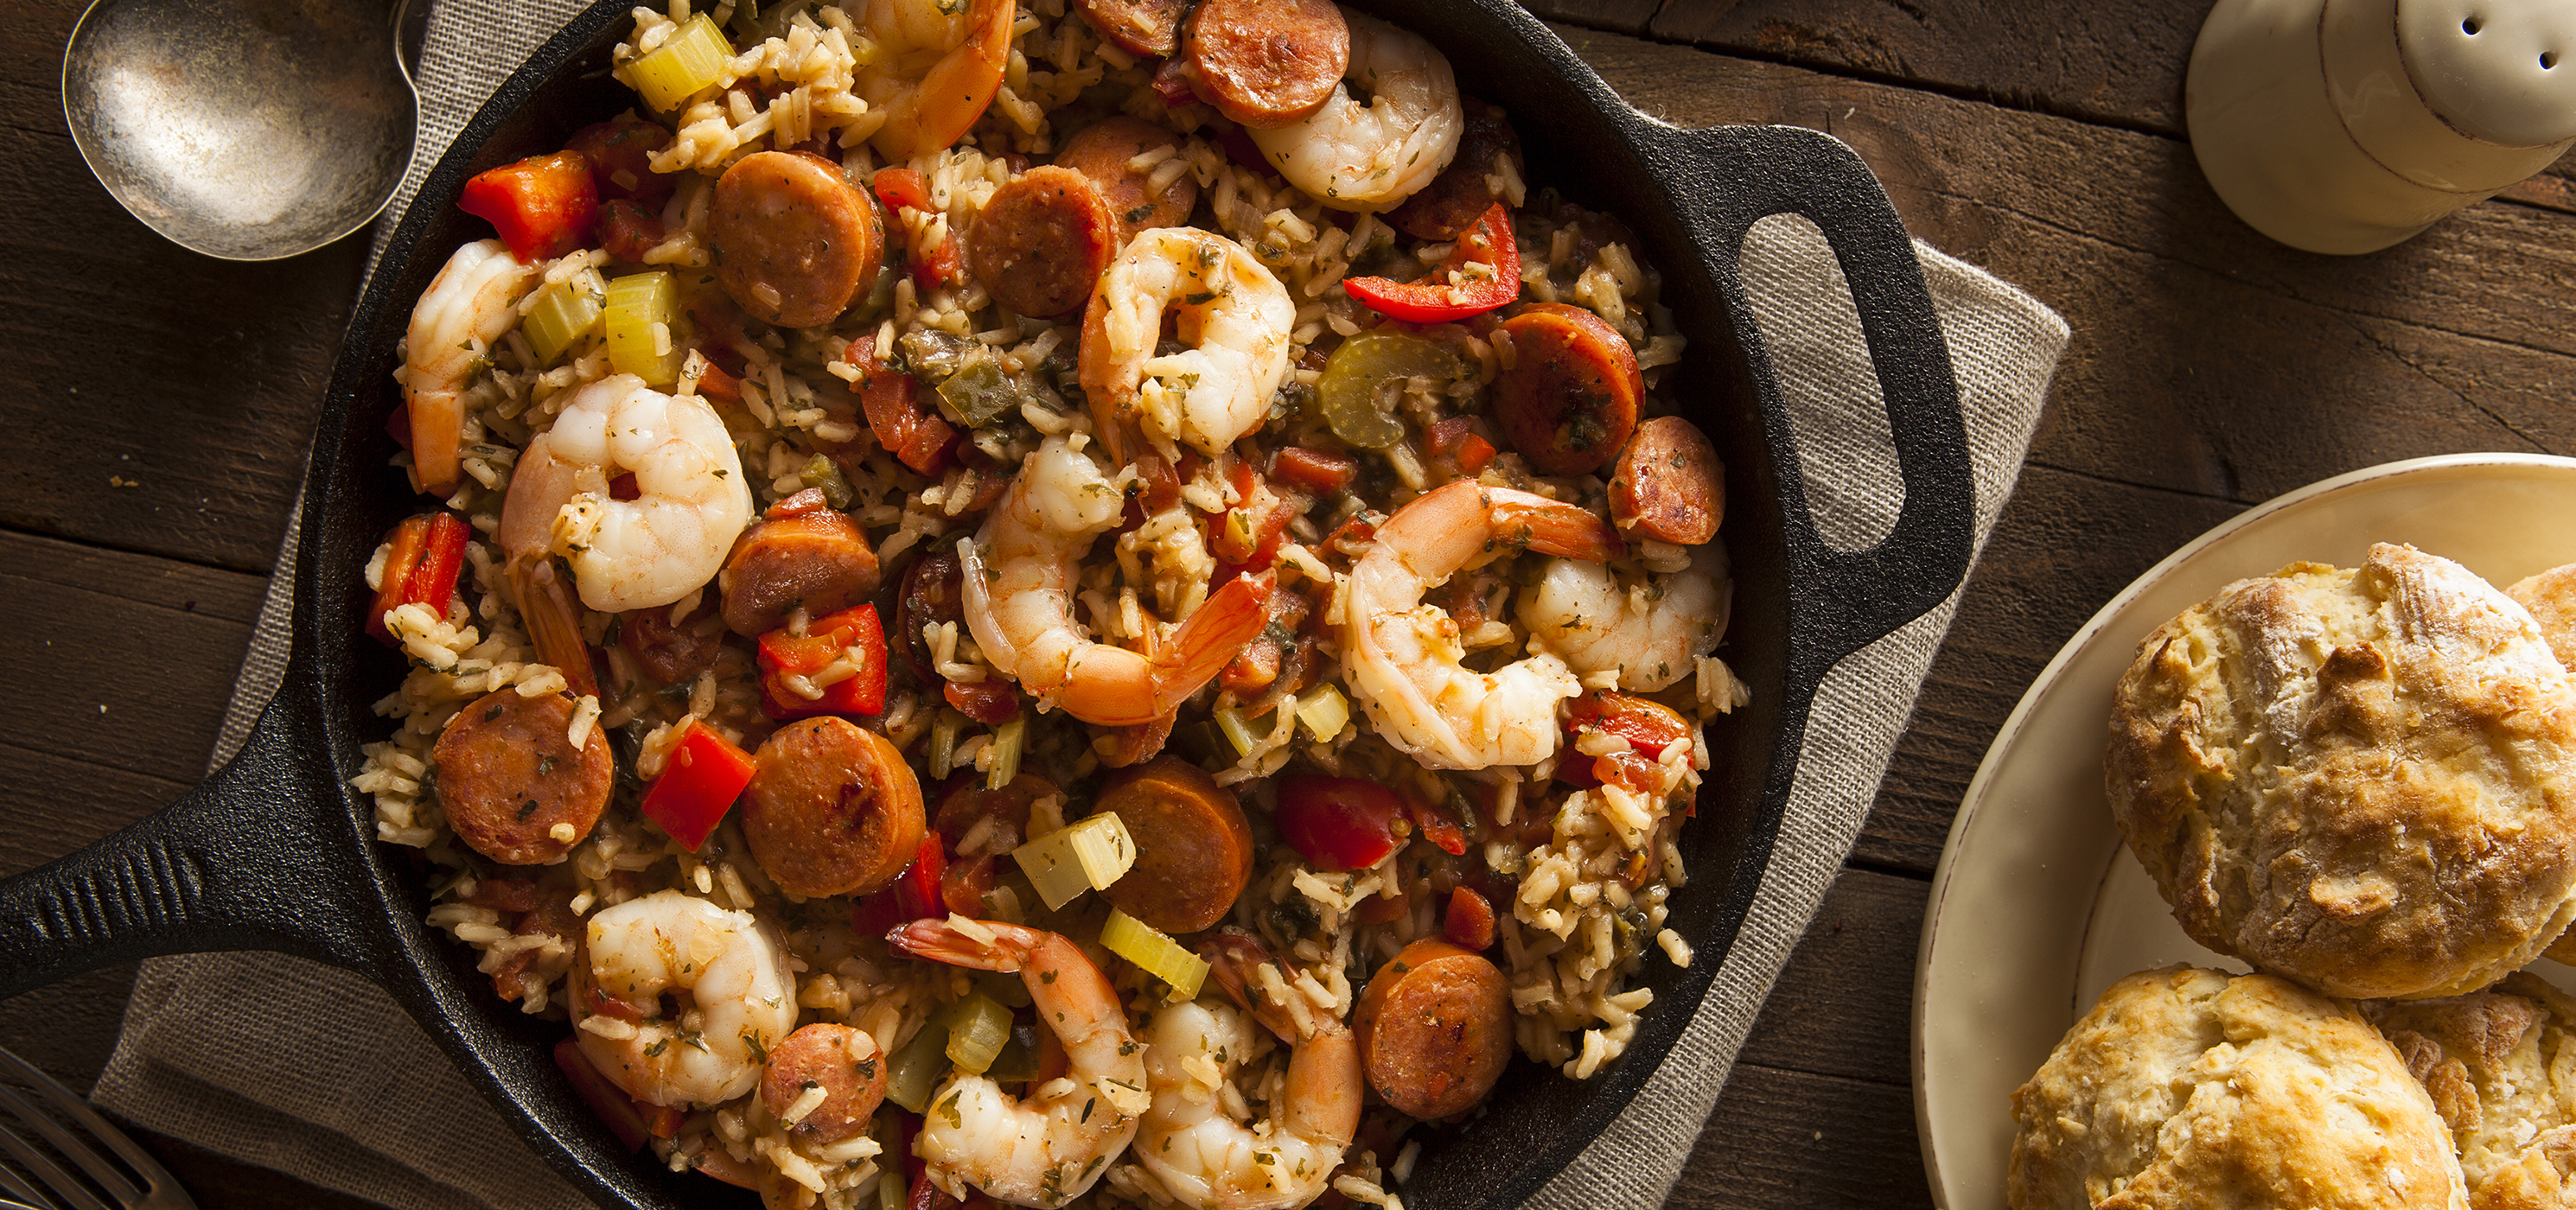 Jambalaya, food, New Orleans, Louisiana, USA